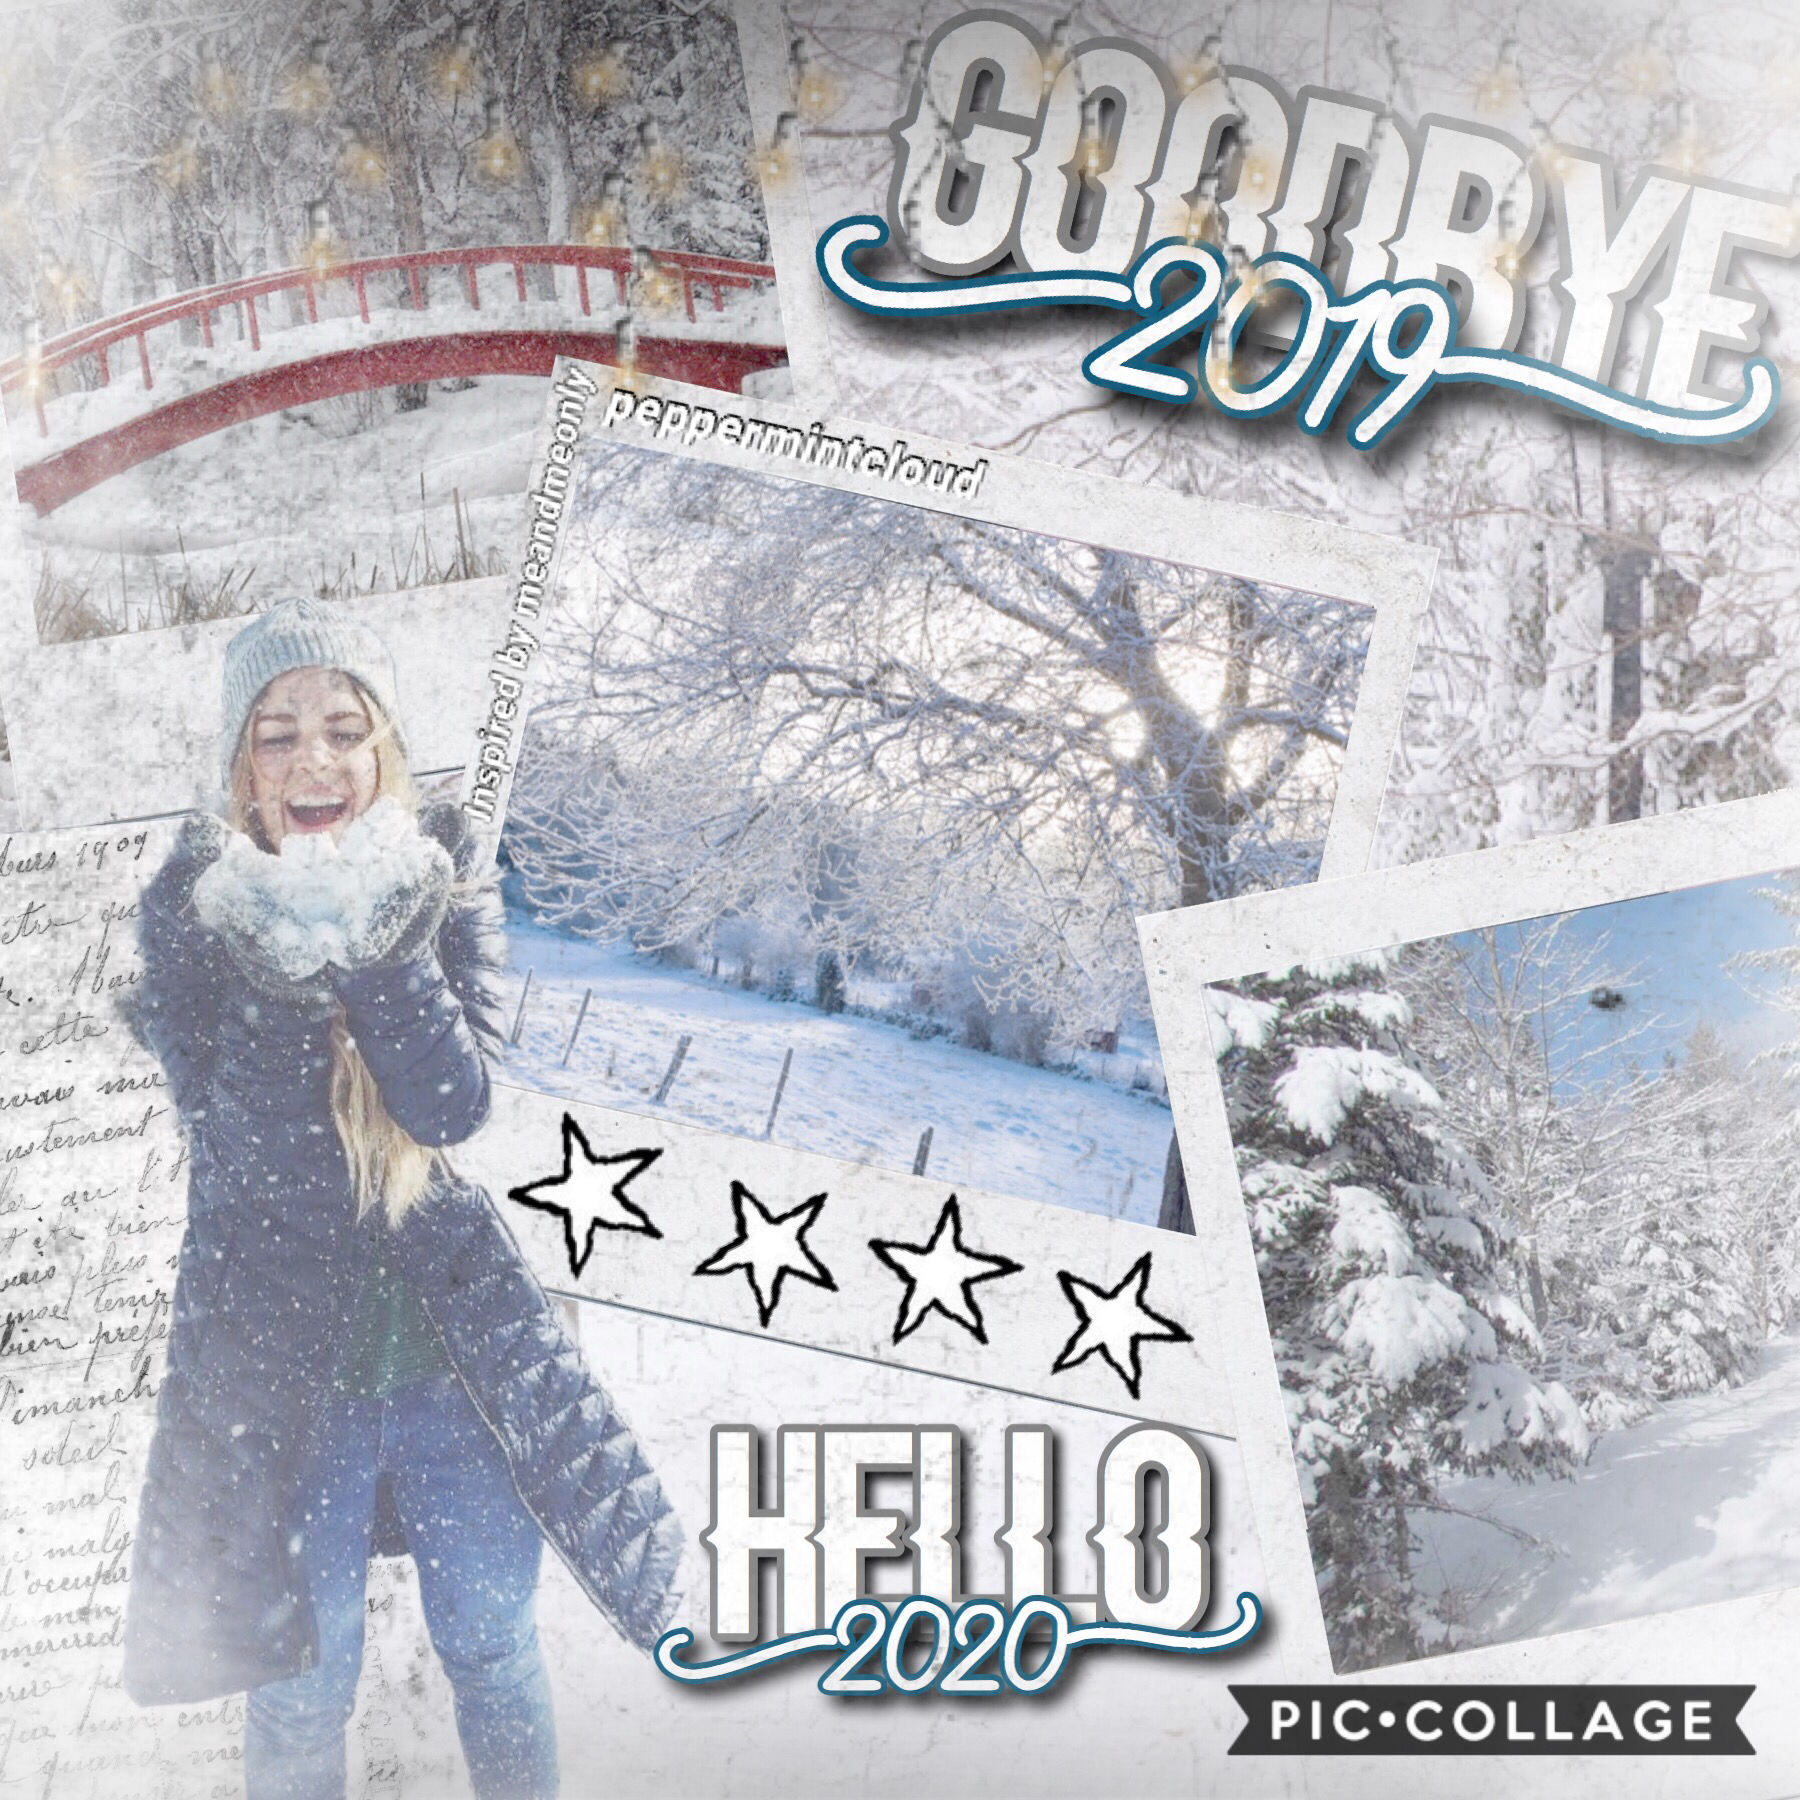 This collage was inspired by Meandmeonly! ALSO CHECK REMIXES FOR A SURPRISE! (Don't judge me on it tho😂😂😂I know it's a weird surprise😂😂😂) HAAPPPPPPYYY NEWWW YEEAARRR😱😱😱😱😱🥳🥳🥳🥳🥳🥳🎉🎉🎉🎉😁😁😁😁